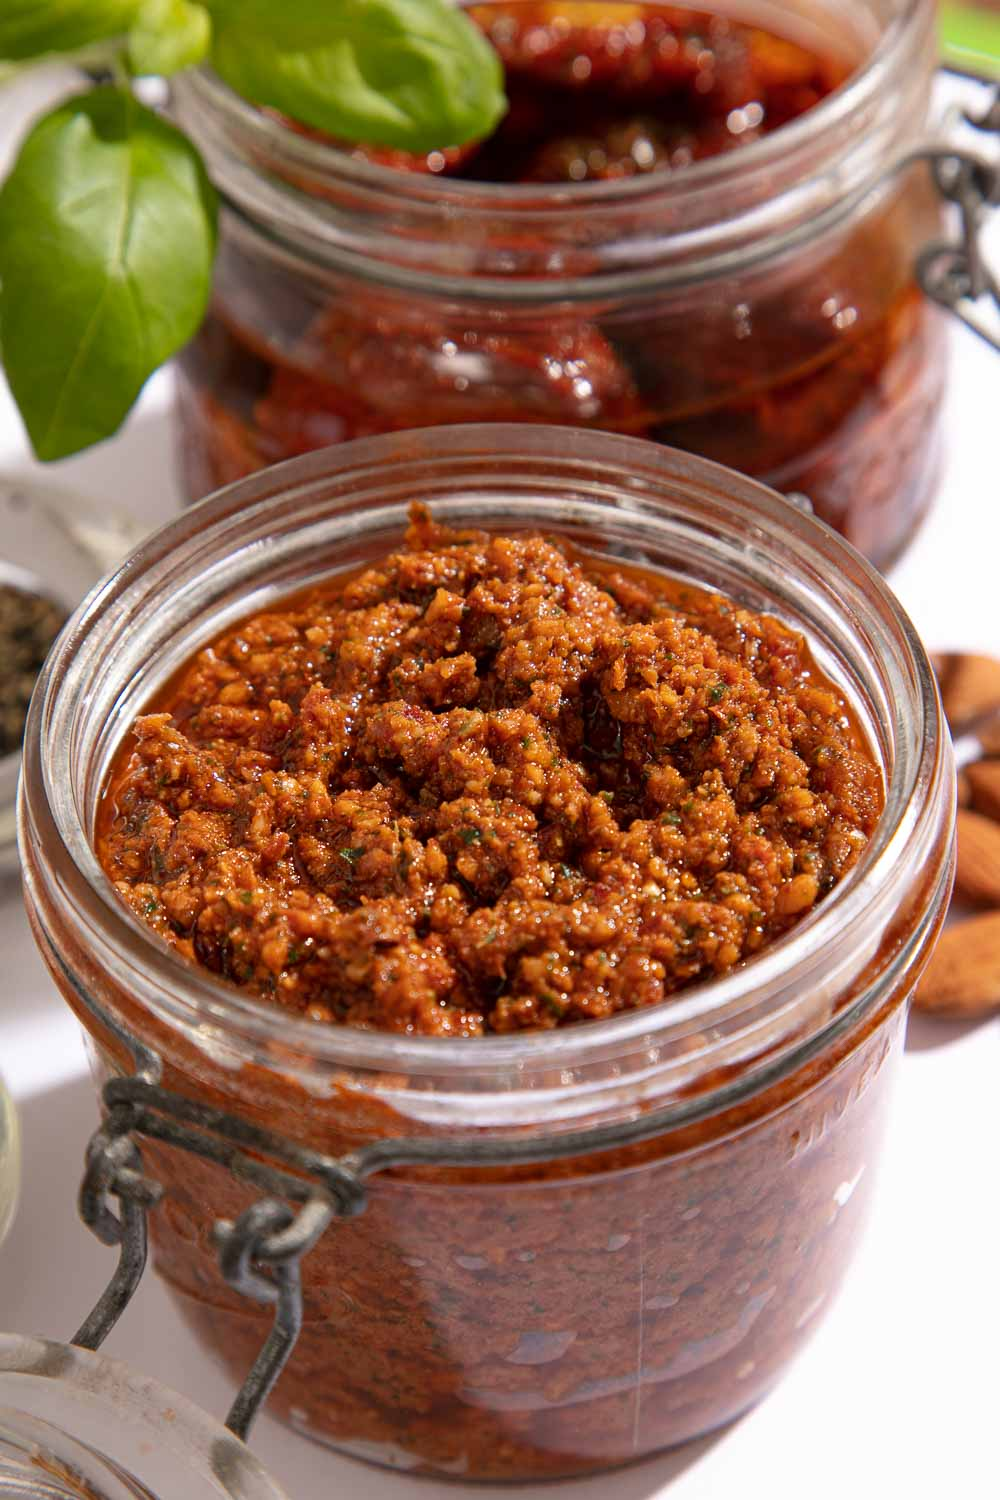 A jar of homemade red pesto.